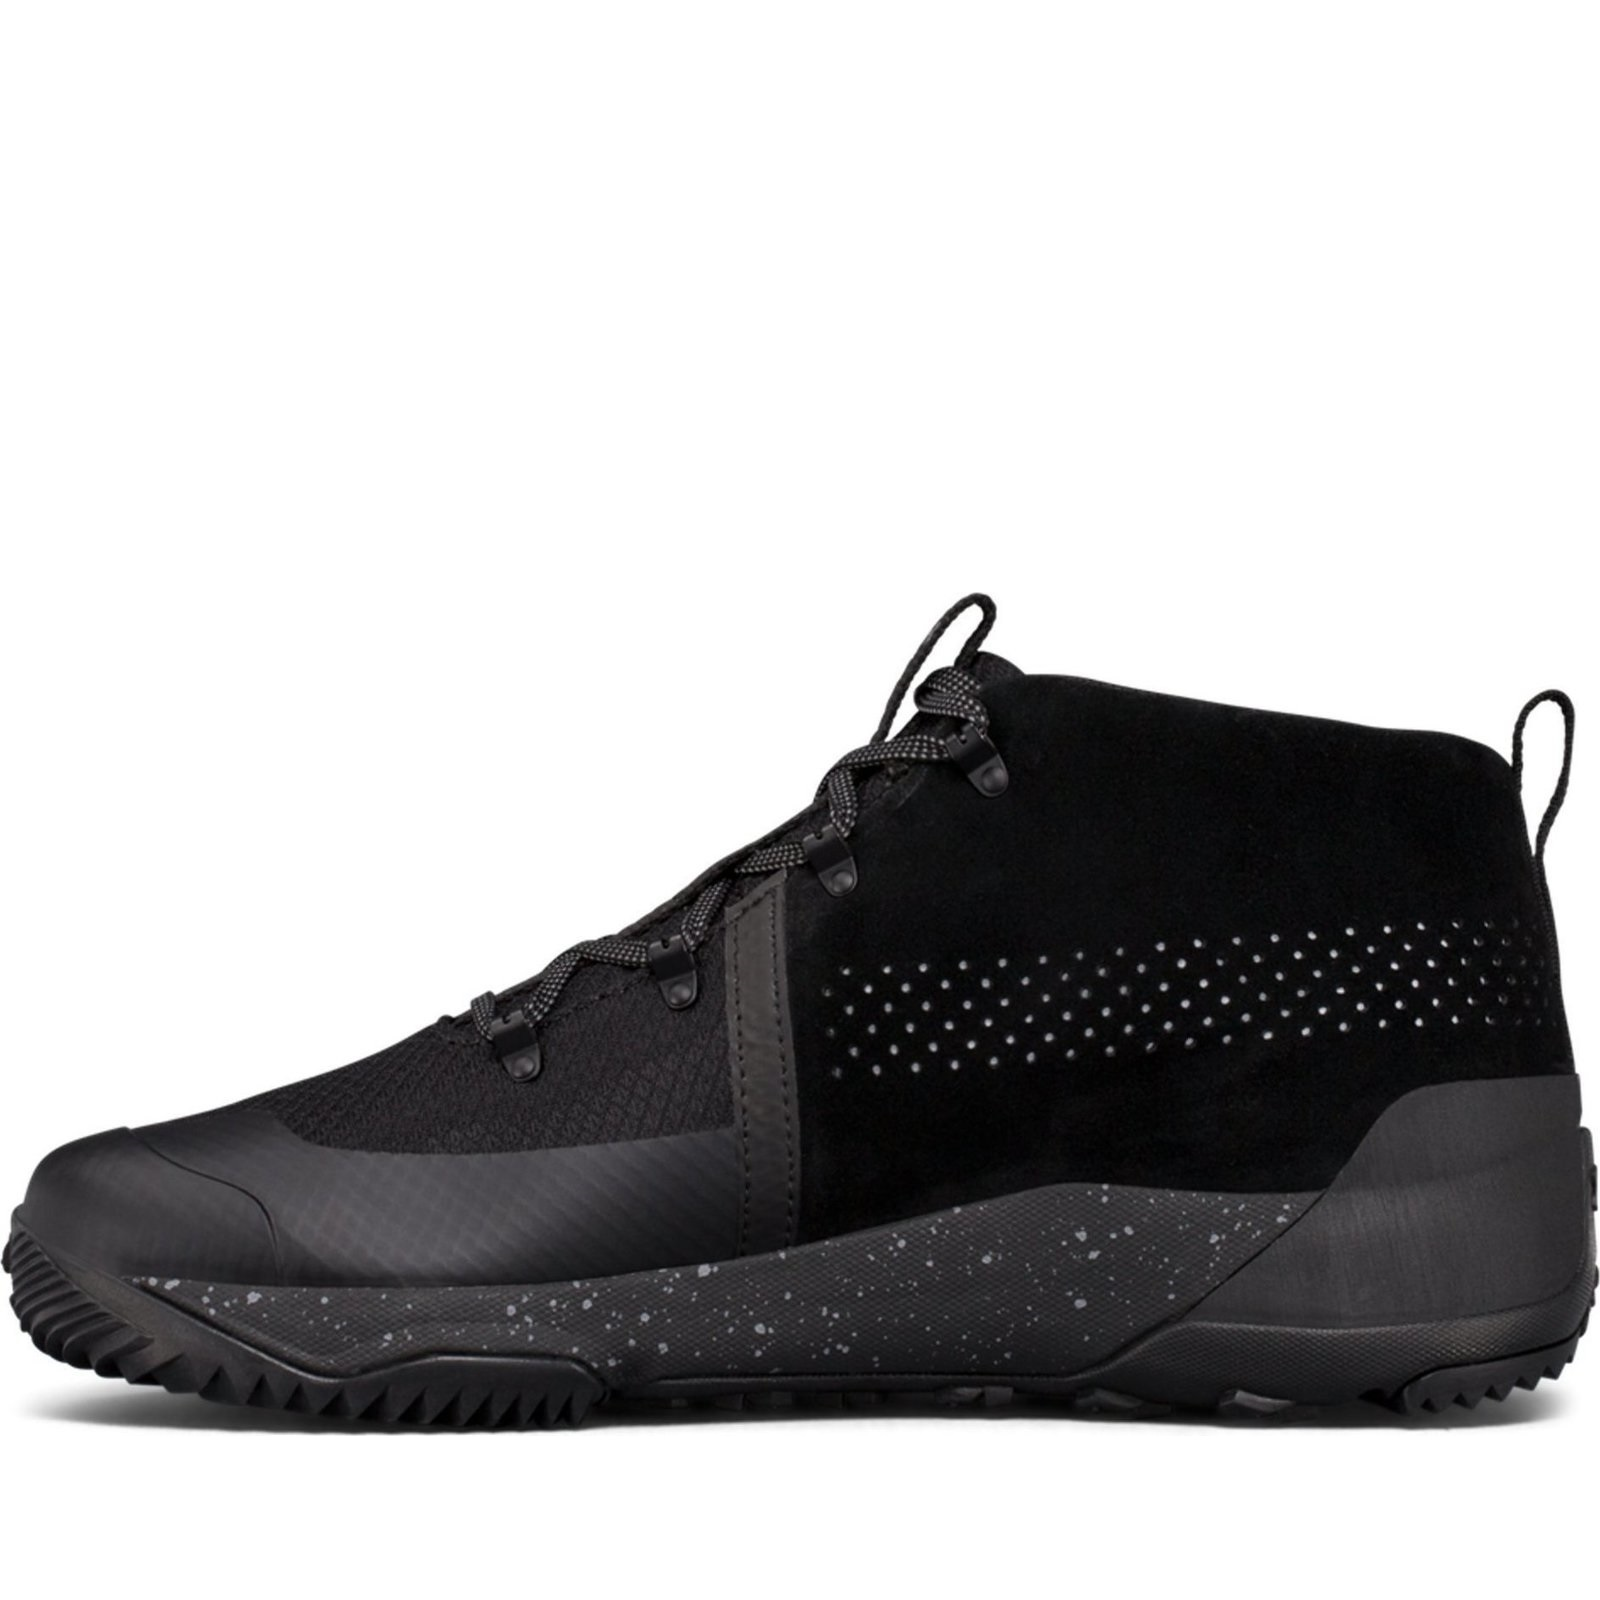 Under armour Burnt River 2.0 Mid Hiking